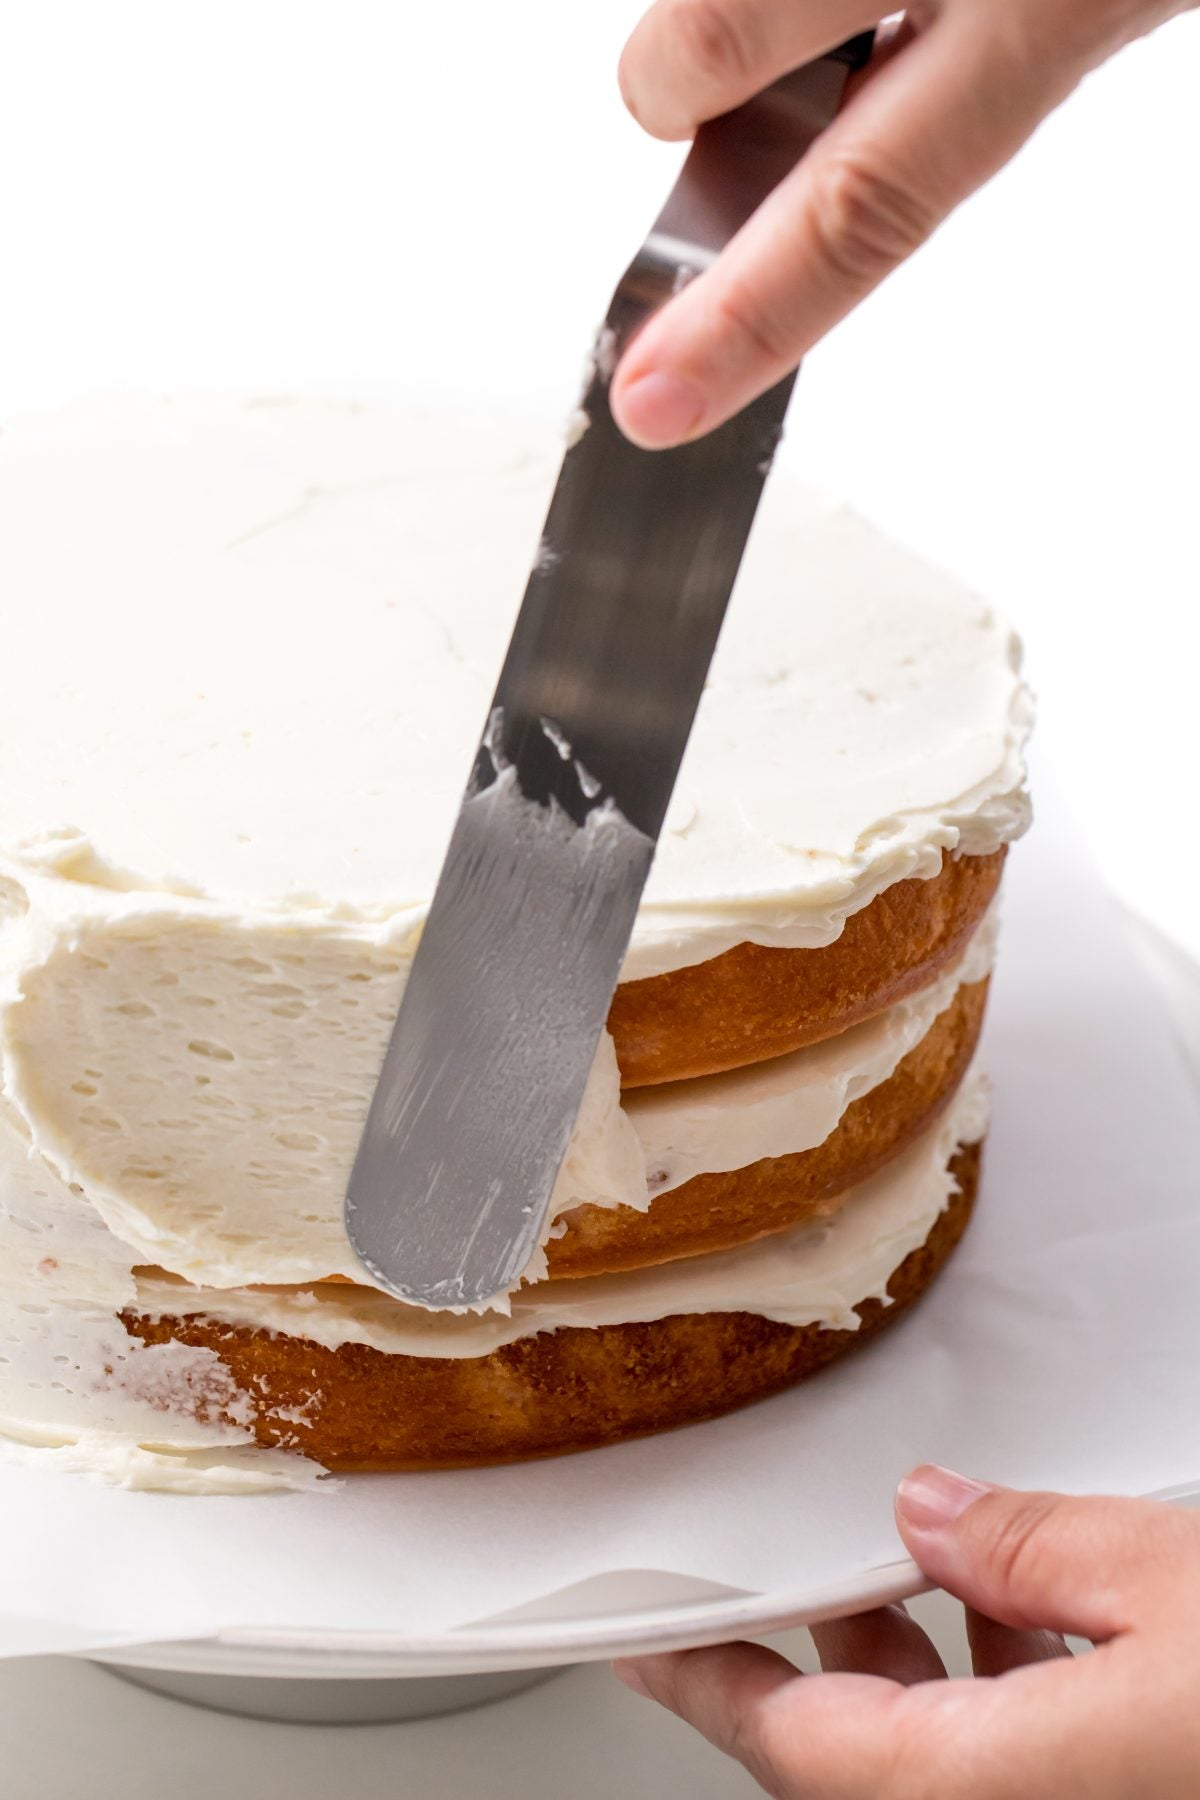 APPLY BUTTER CREAM ICING TO SIDES OF CAKE